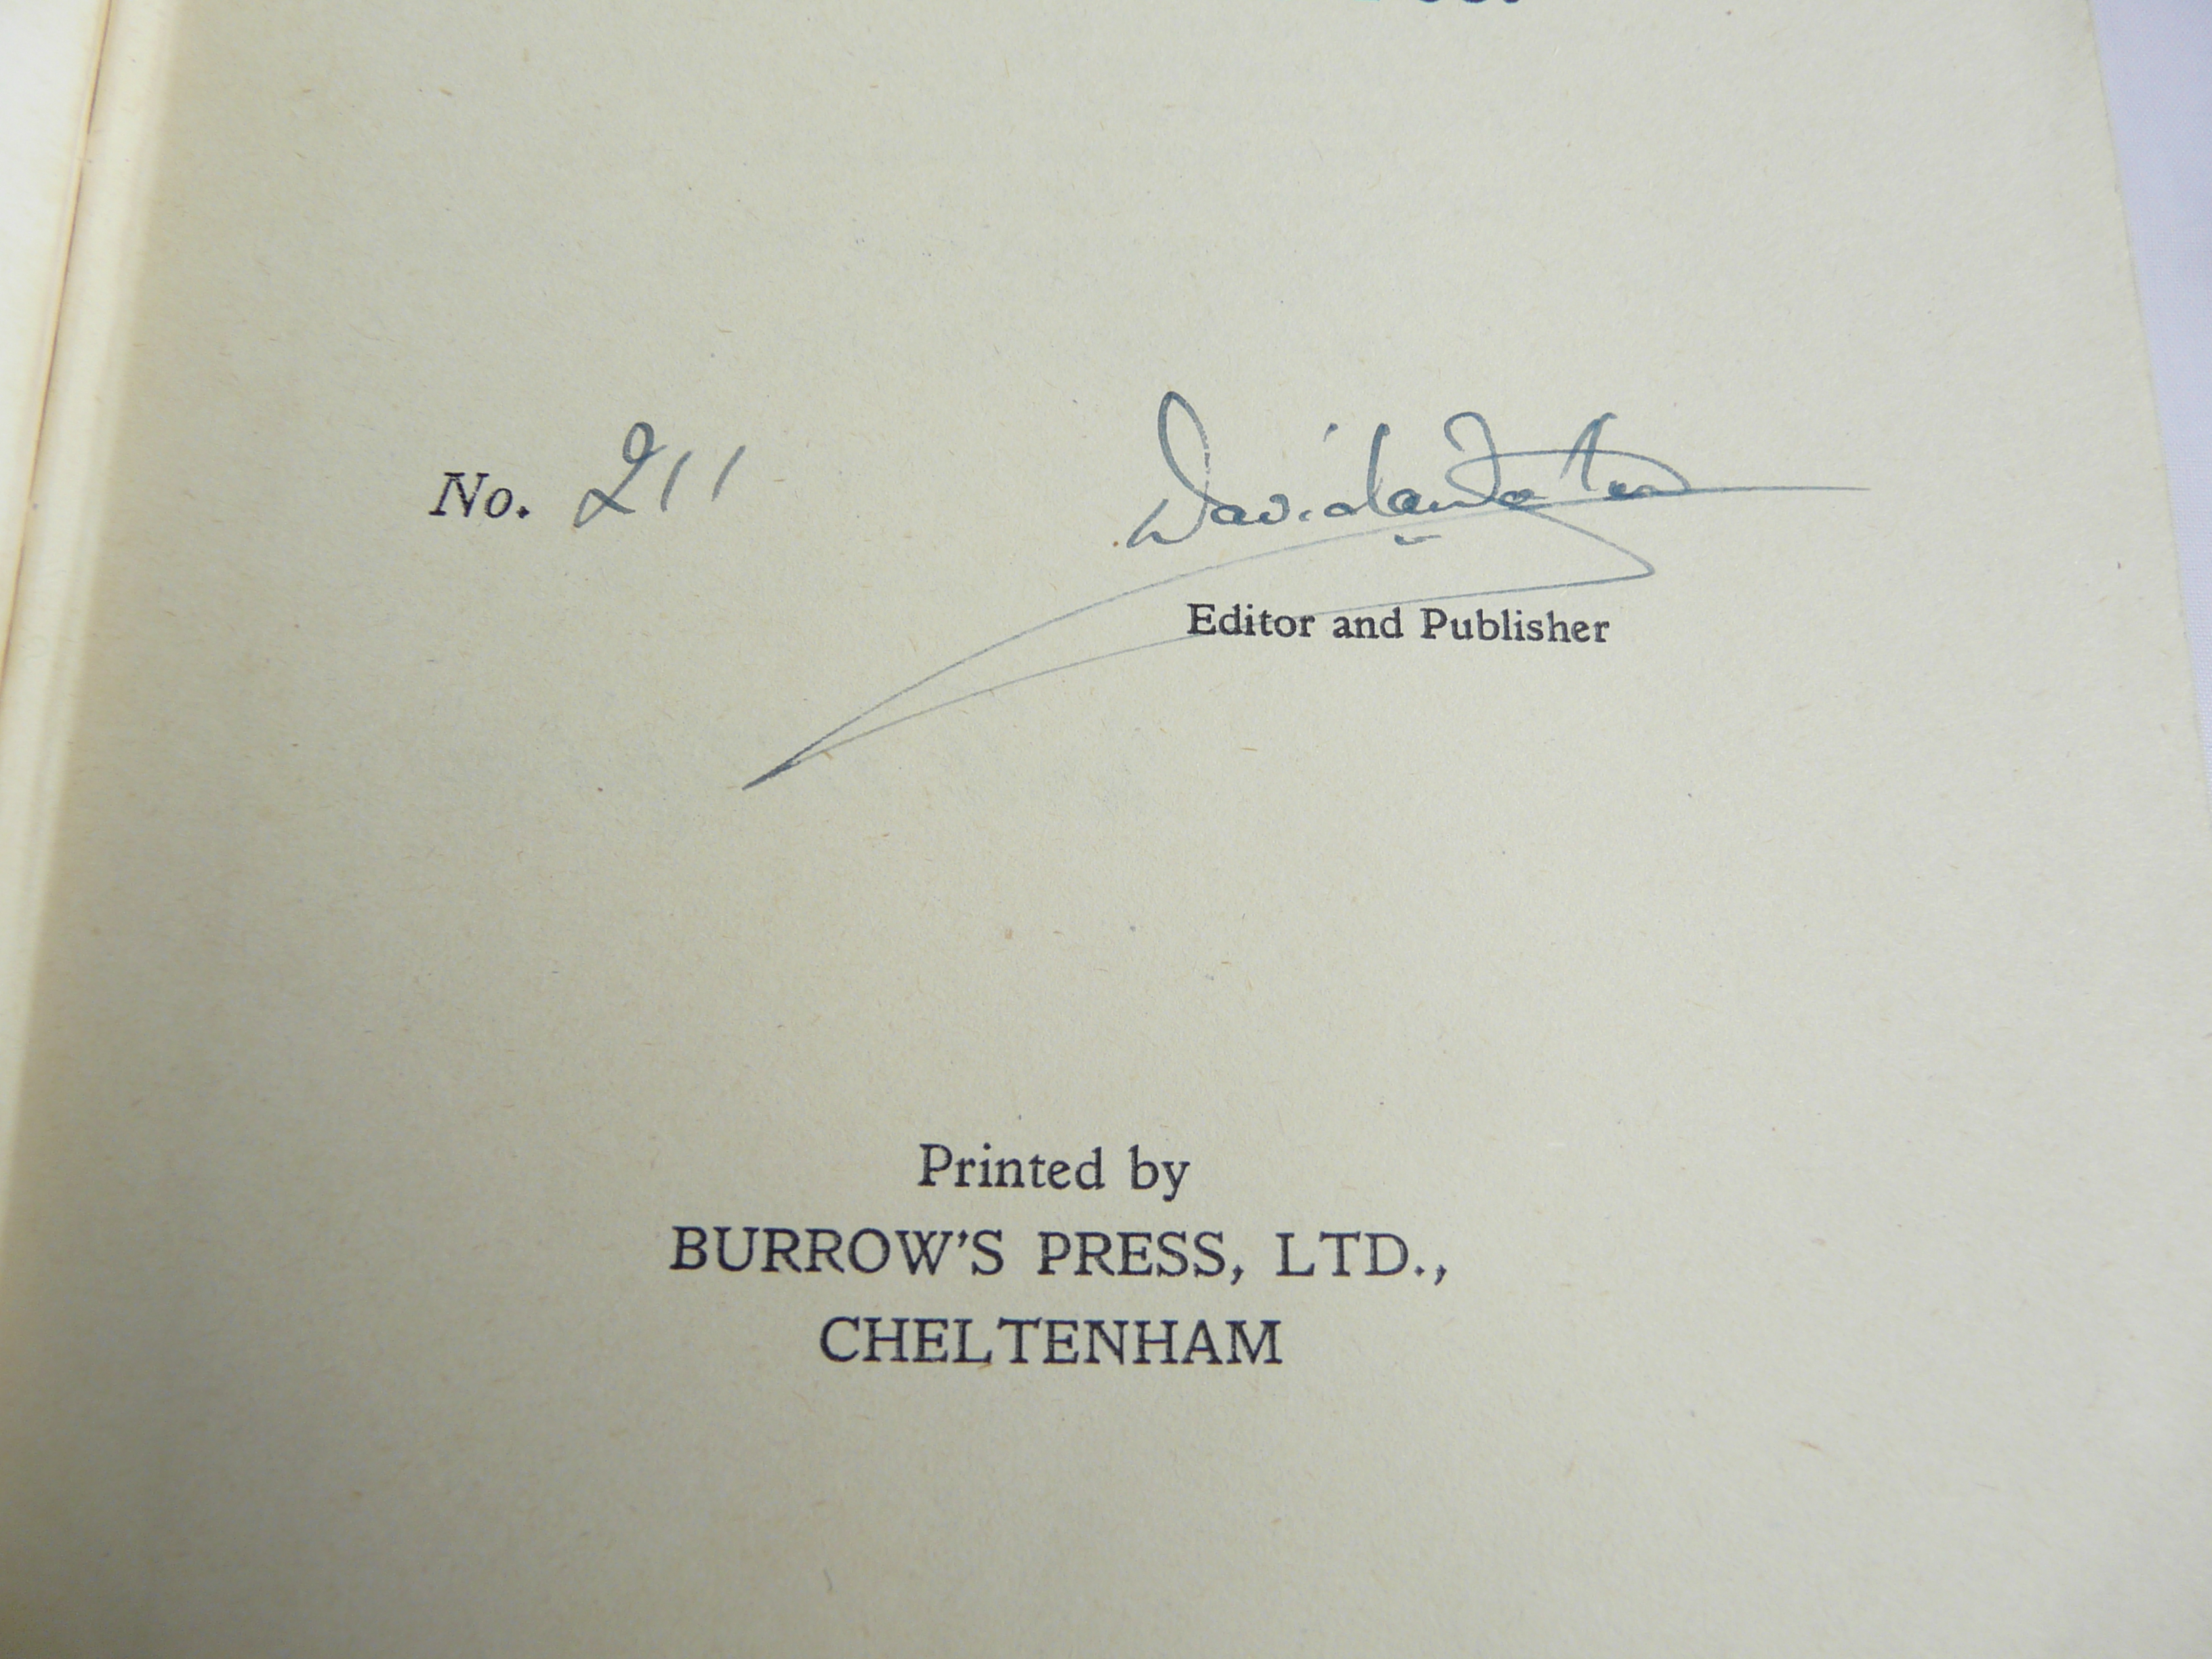 Harehunters All - signed title page